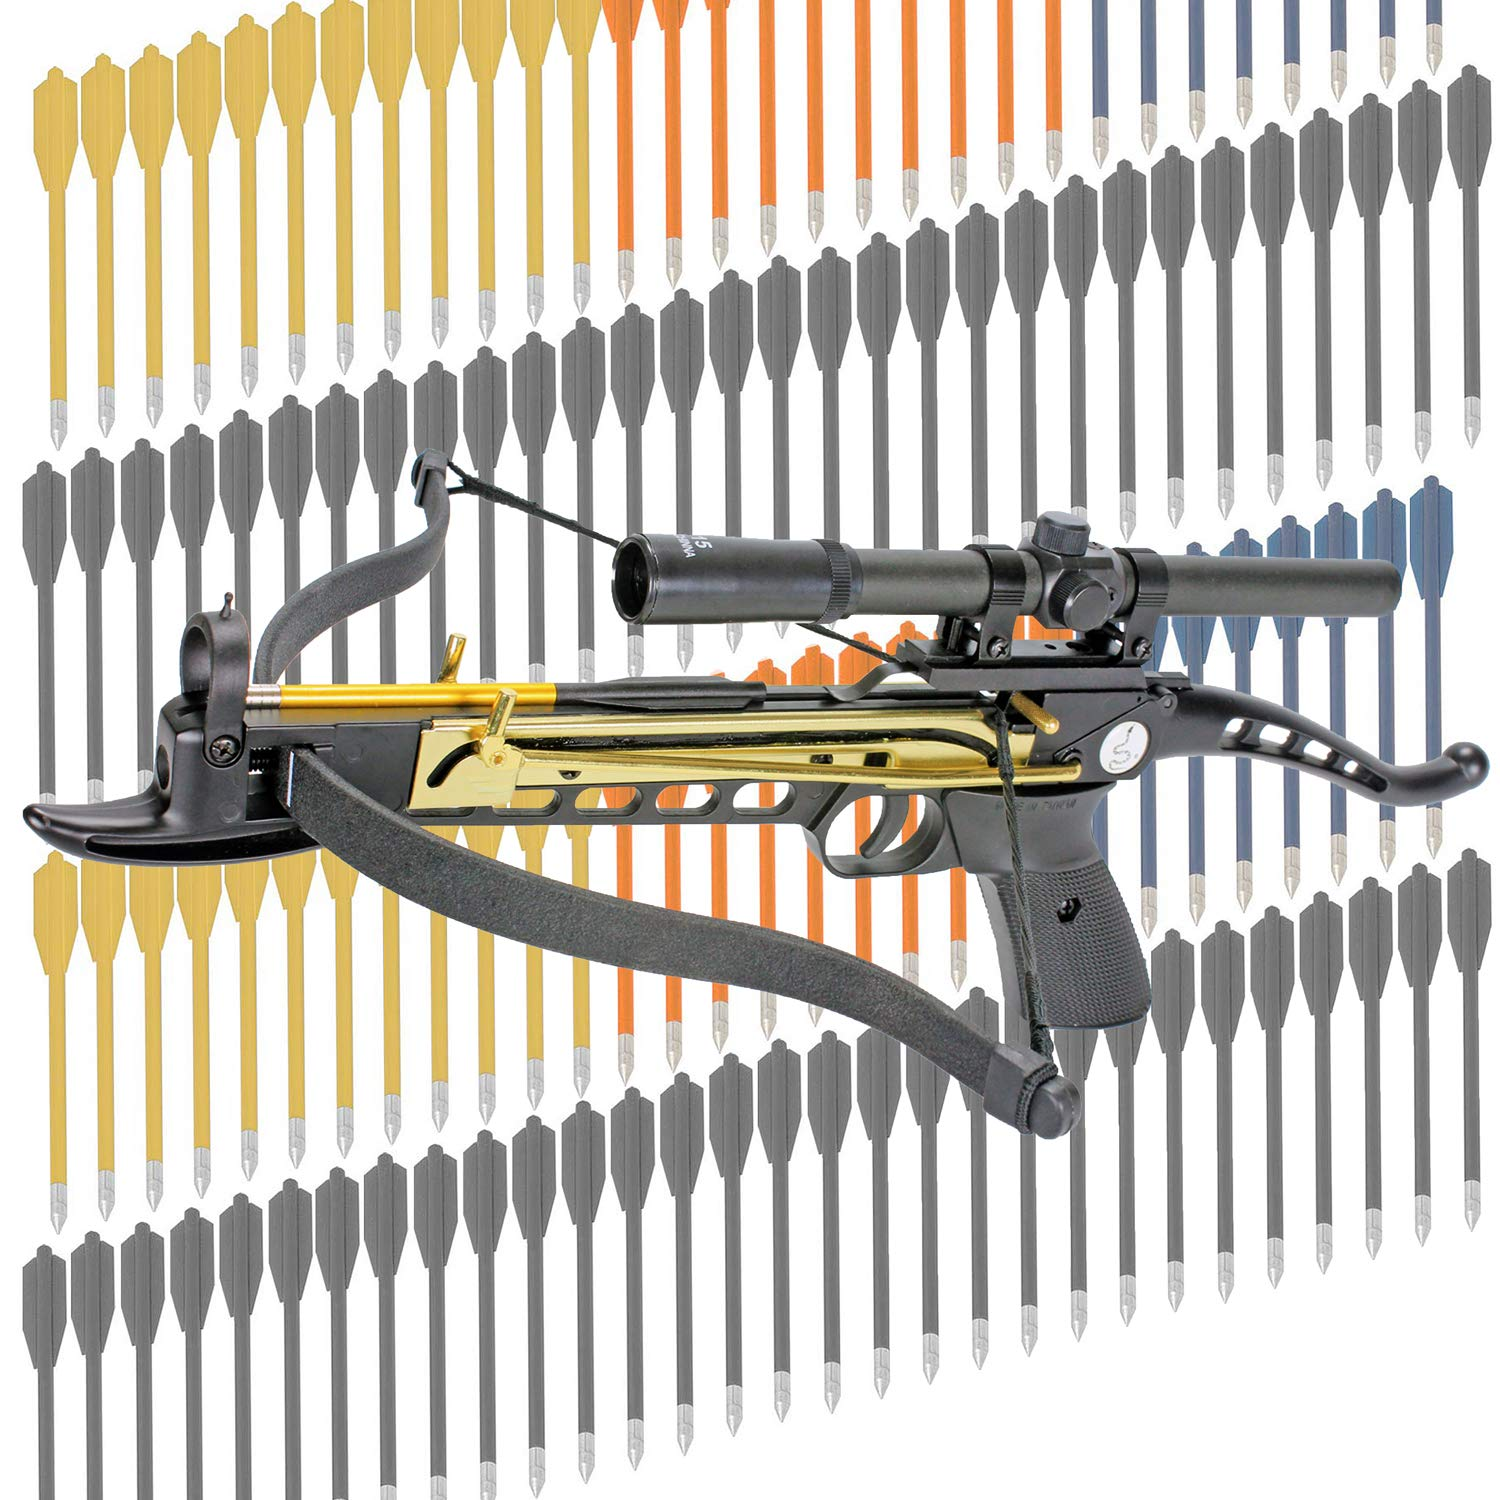 KingsArchery Crossbow Self-Cocking 80 LBS with Hunting Scope, 3 Aluminium Arrow Bolts, and Bonus 120-pack of Colored PVC Arrow Bolts Warranty